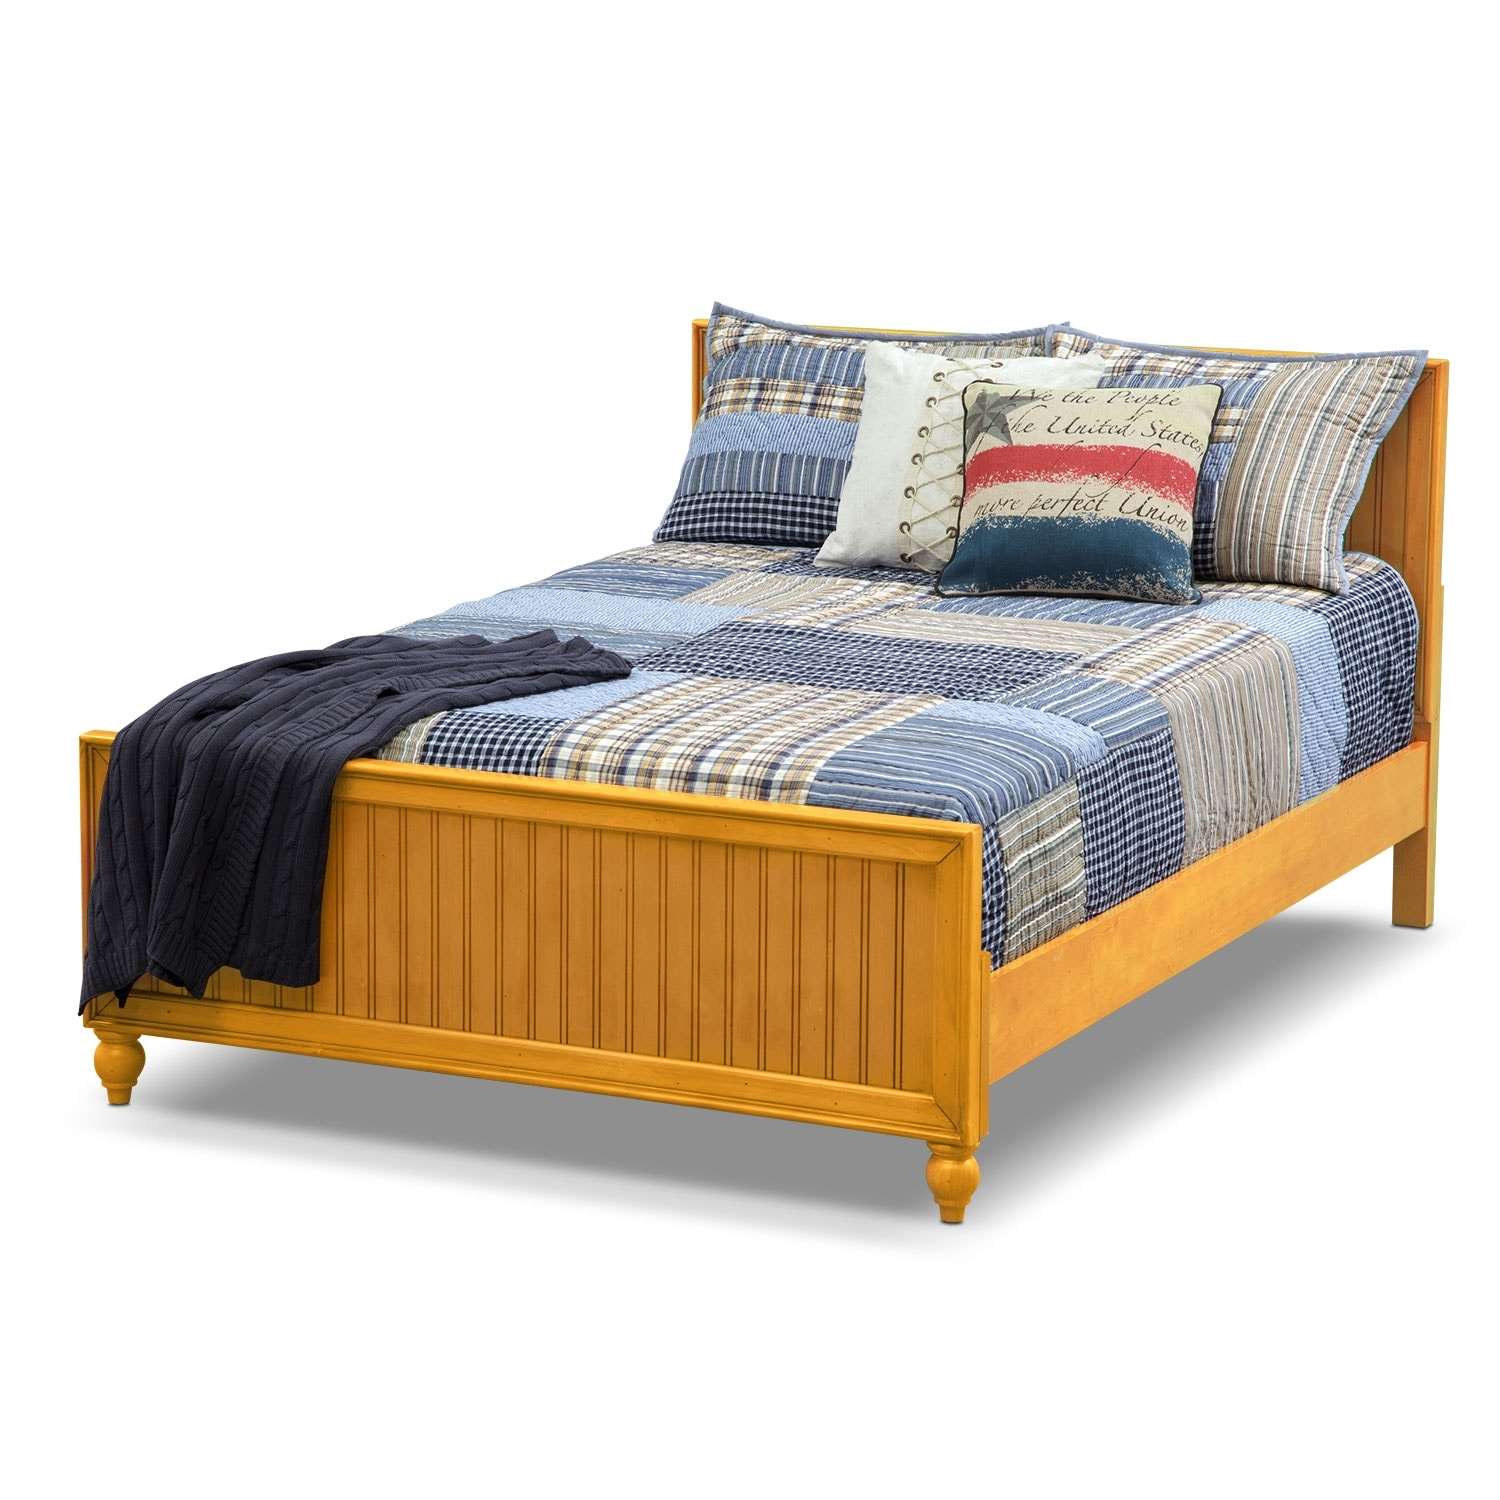 Shop Full Size Beds Value City Furniture